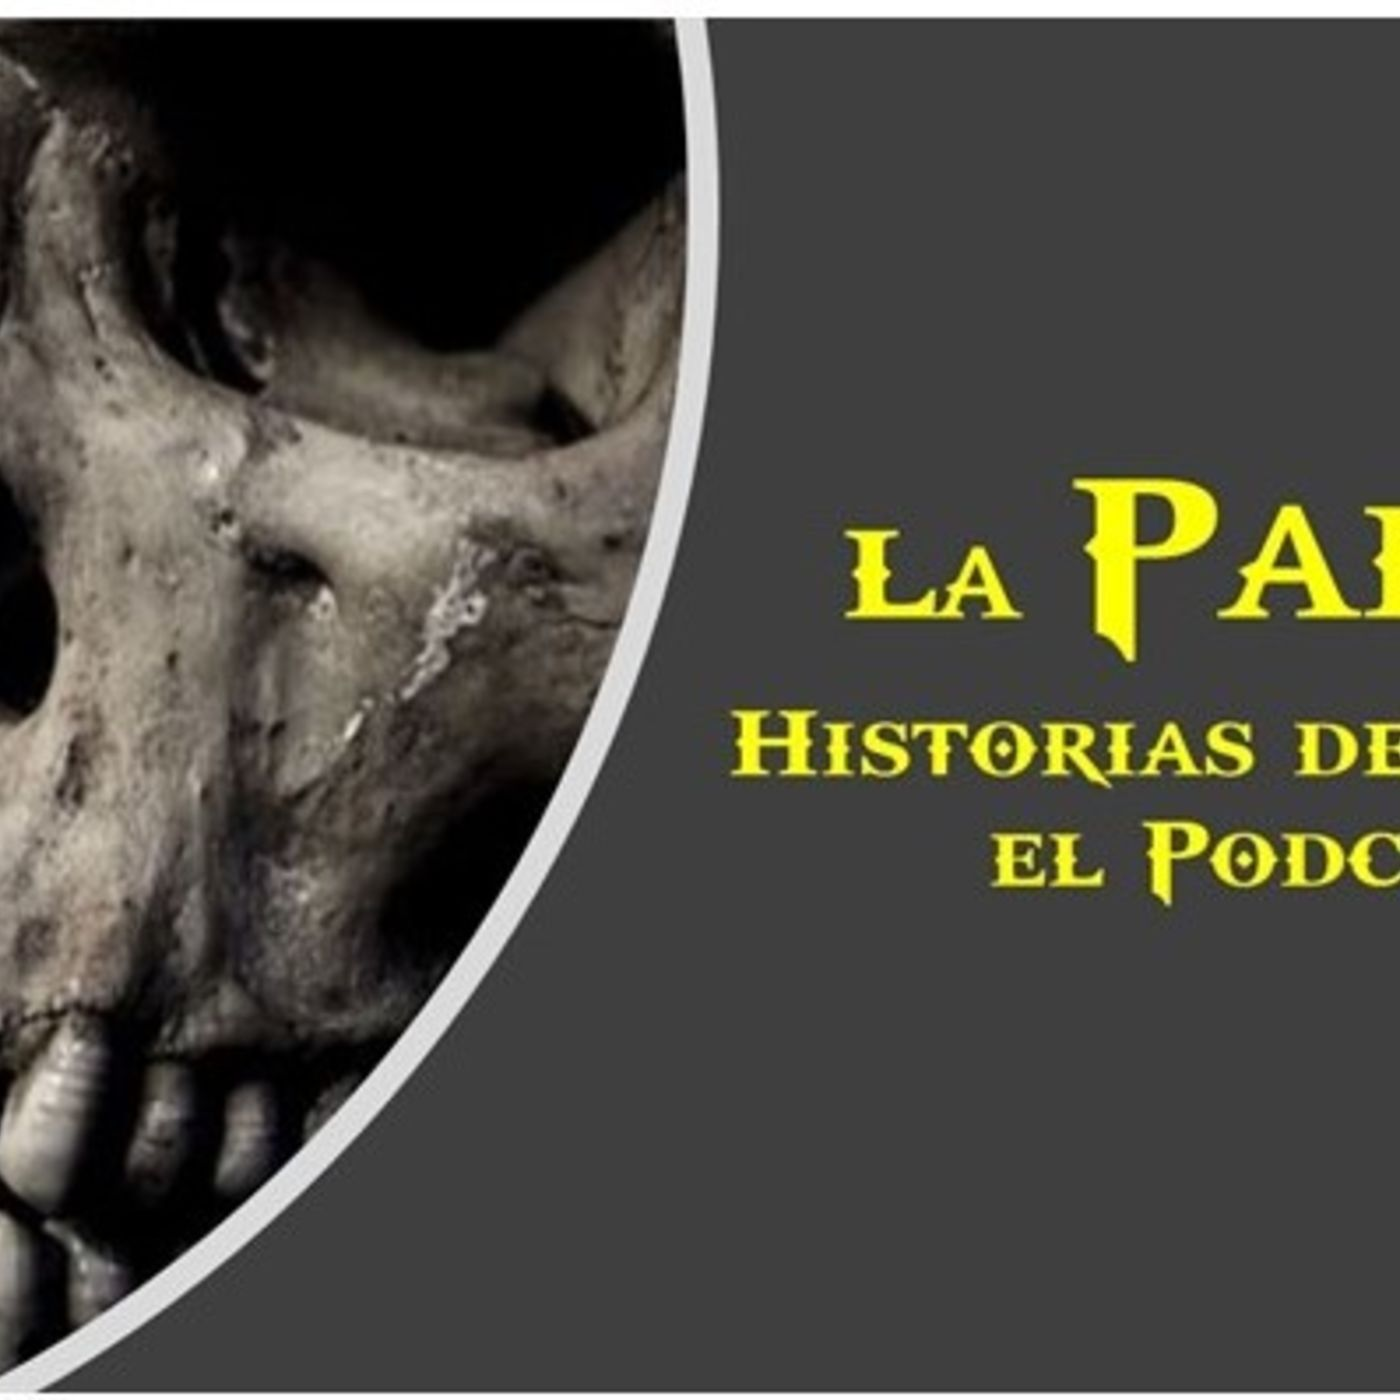 La Parka Historias de Terror El Podcast - Rankings on Spotify : - Chartable